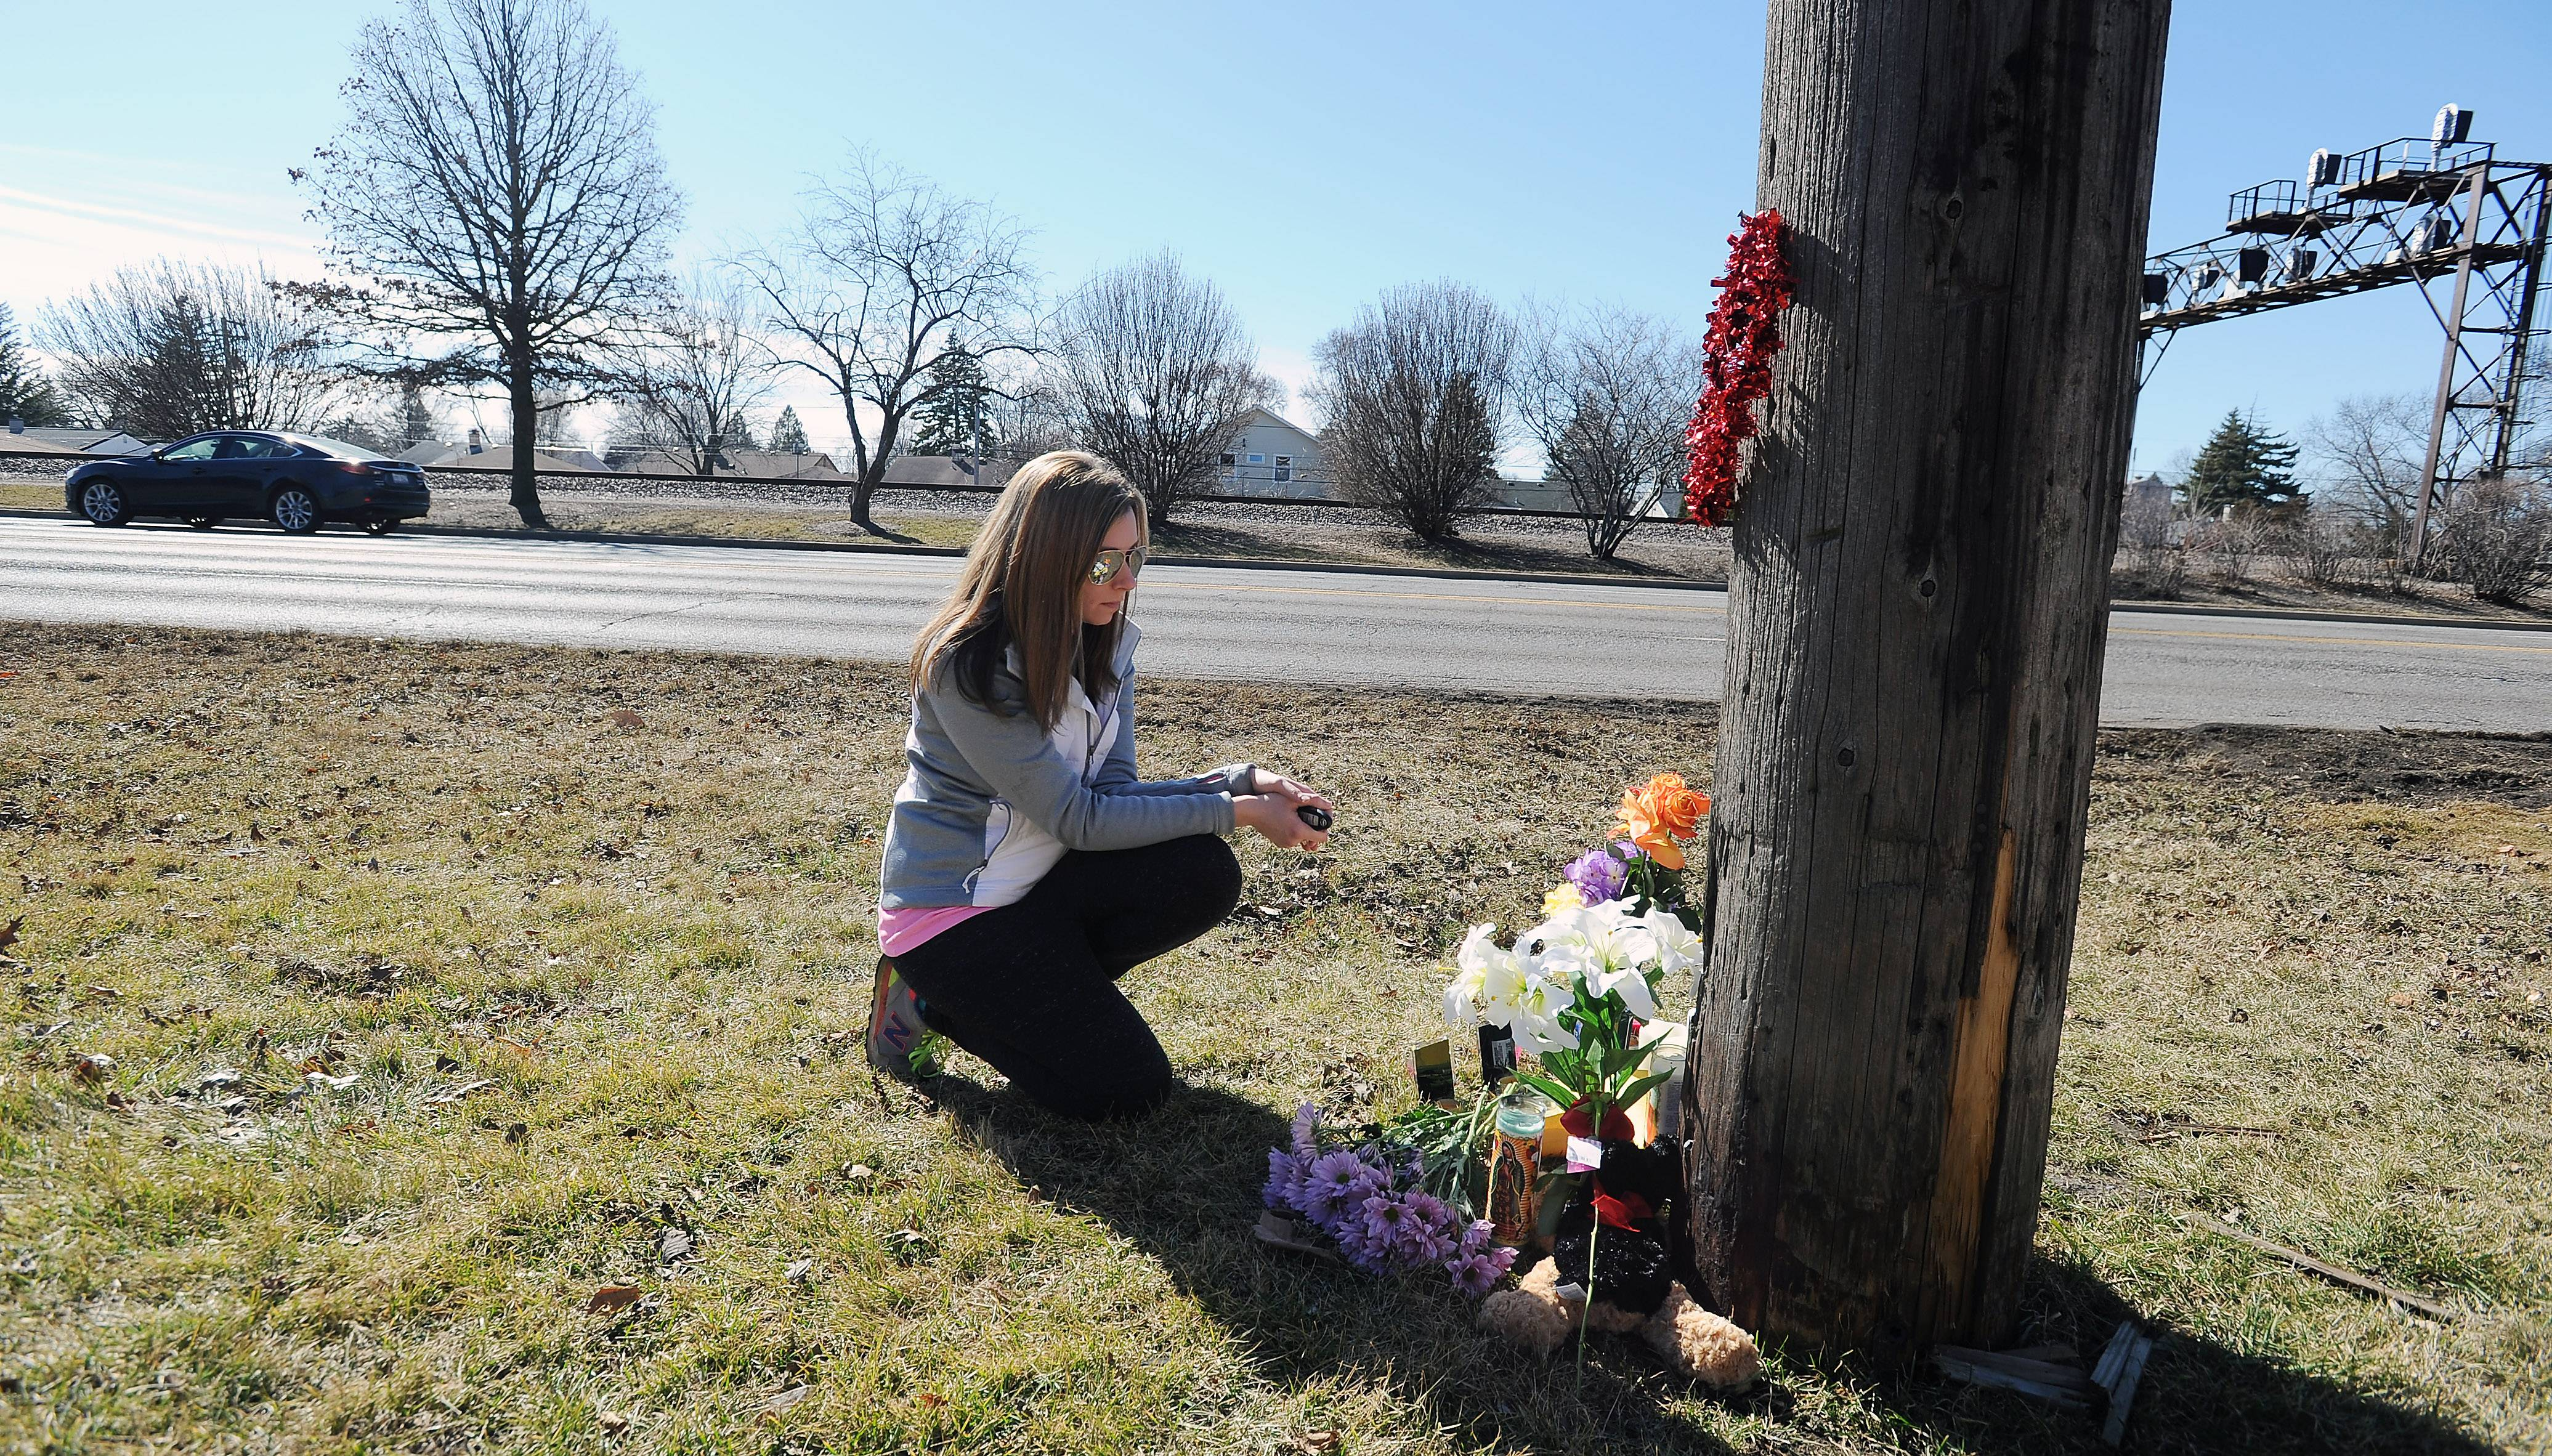 Kristen Benwitz of Mount Prospect brings a card from her son Jack and white lillies to a makeshift memorial for the Crawford family members killed in an auto crash Thursday night. The memorial is near the site of the crash along Northwest Highway in Des Plaines.